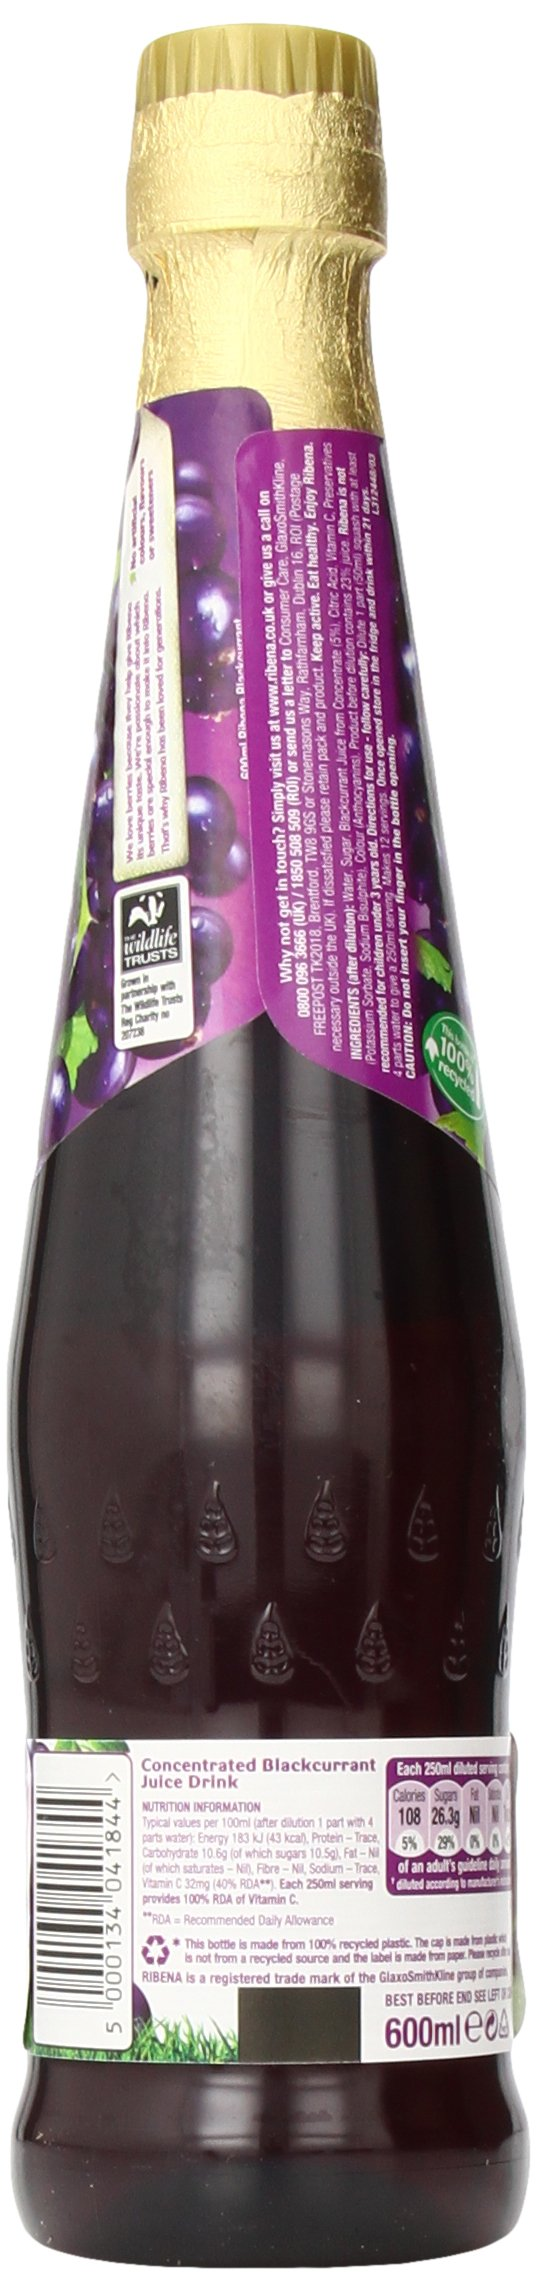 Ribena Original Blackcurrant Drink, 600 ml Bottle (Pack of 12) by Ribena (Image #7)